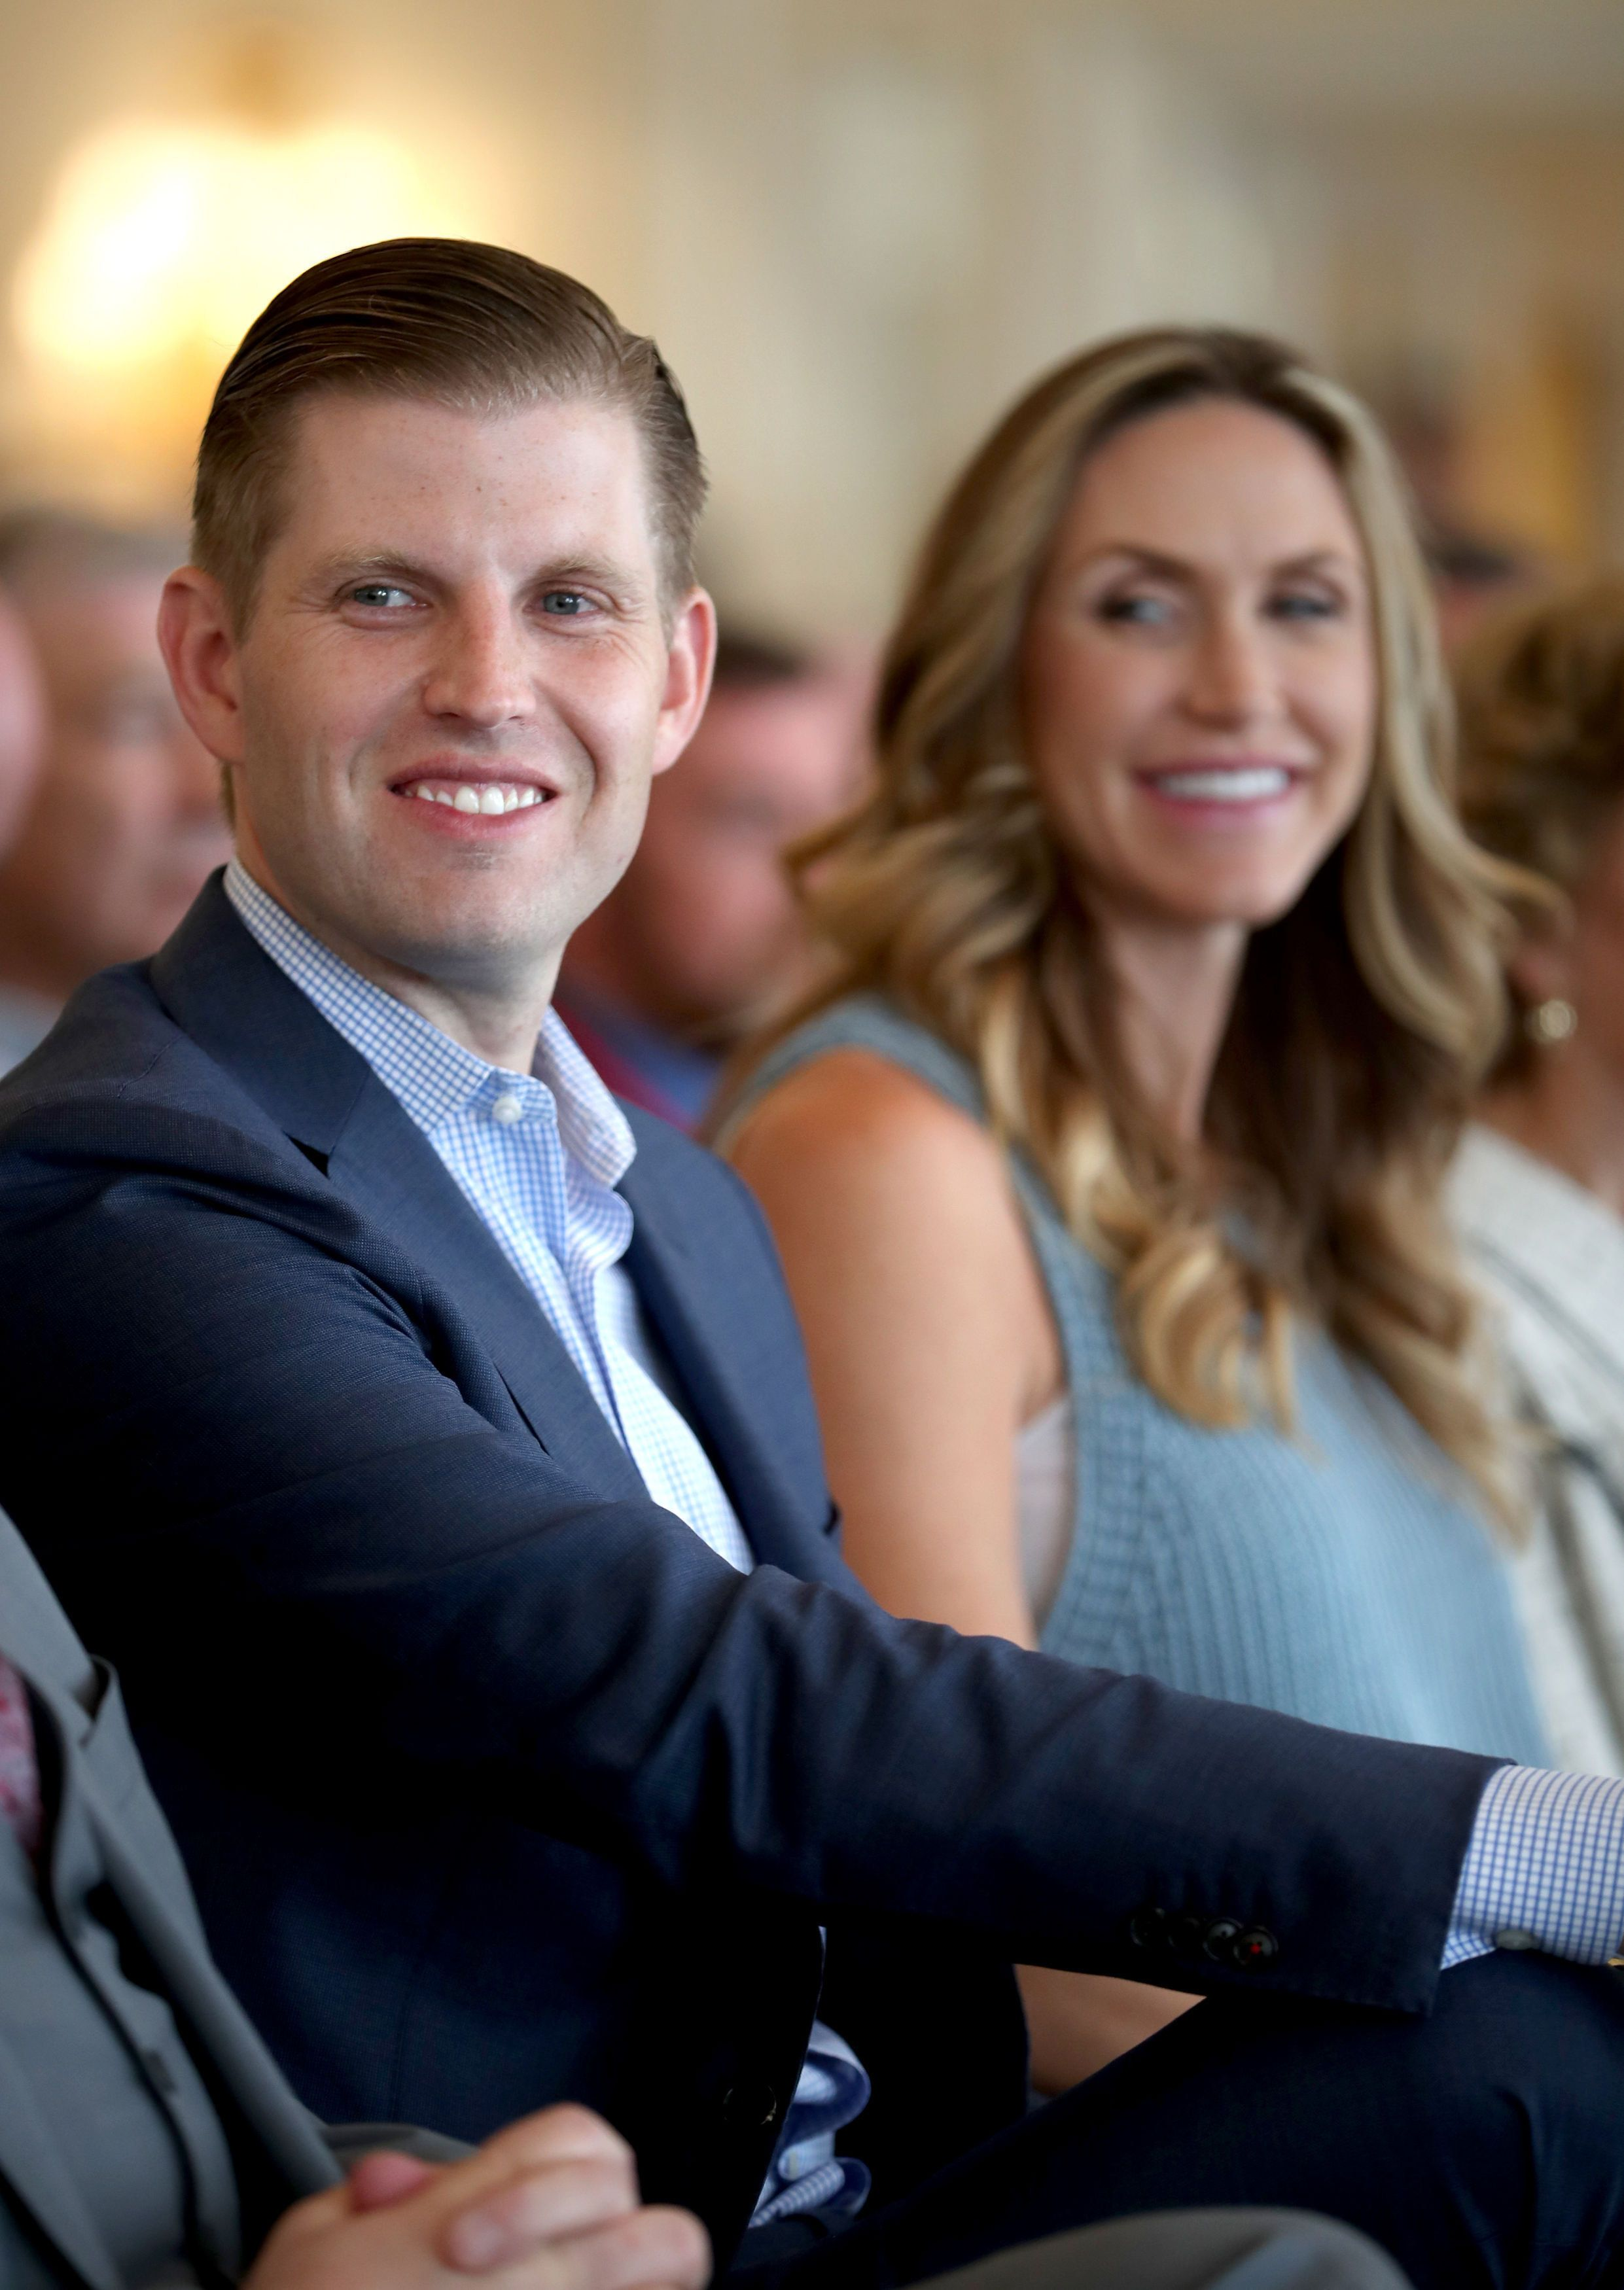 Eric Trump, son of US President Donald Trump, with his wife Lara, during the opening of the new golf course at Trump Turnberry in Ayrshire.